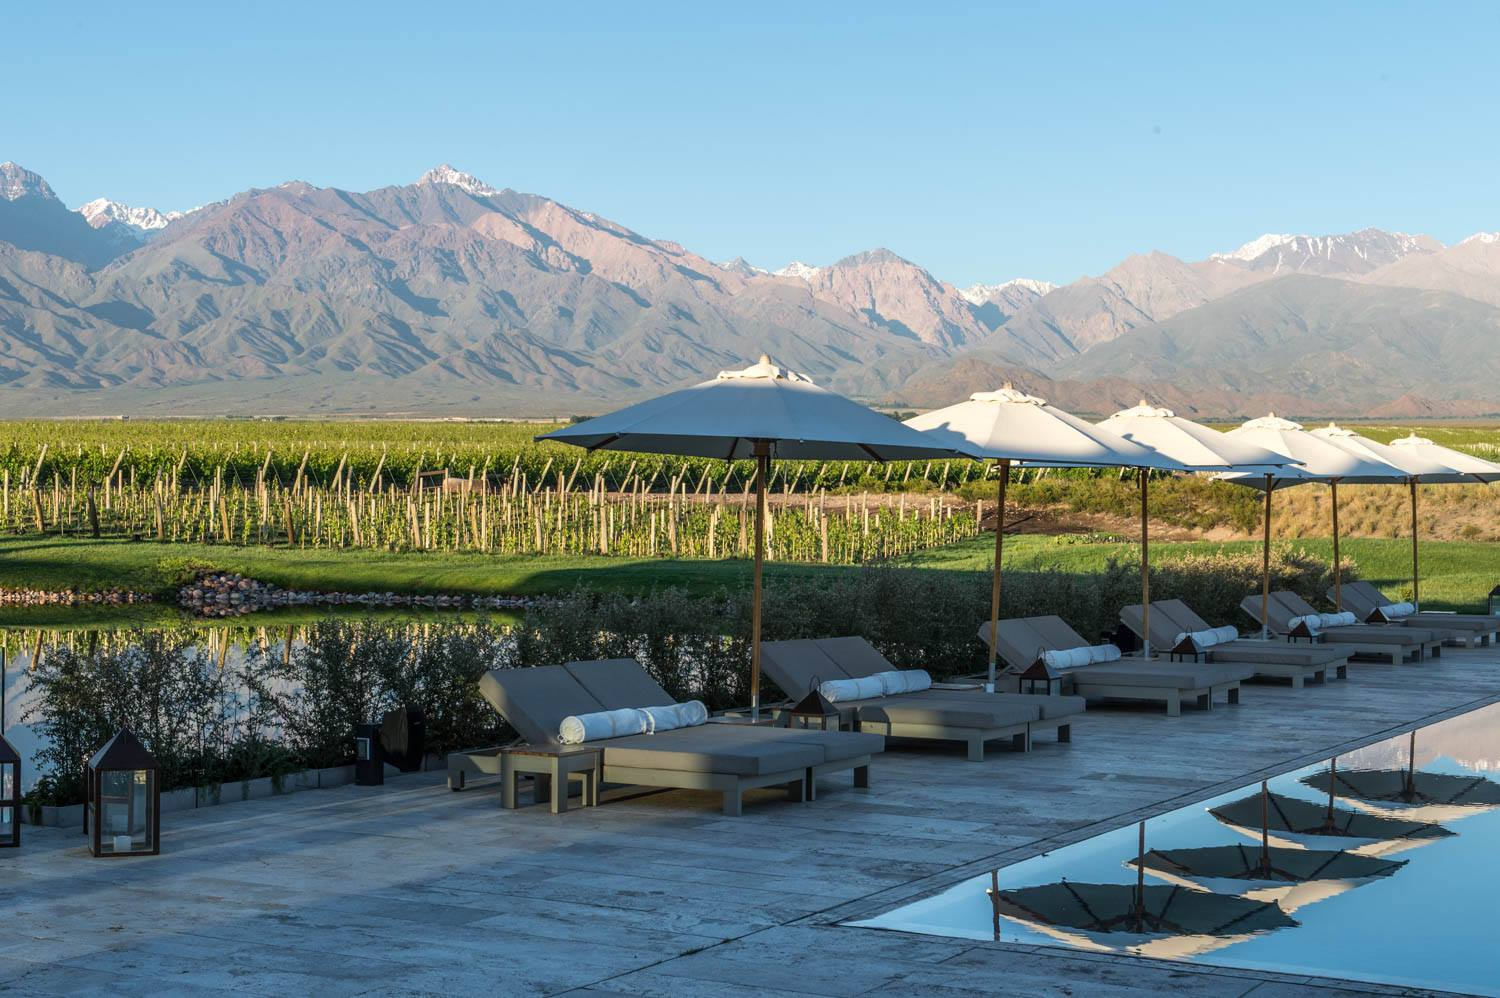 pool deck with chairs and umbrellas with vineyards and mountains in the background